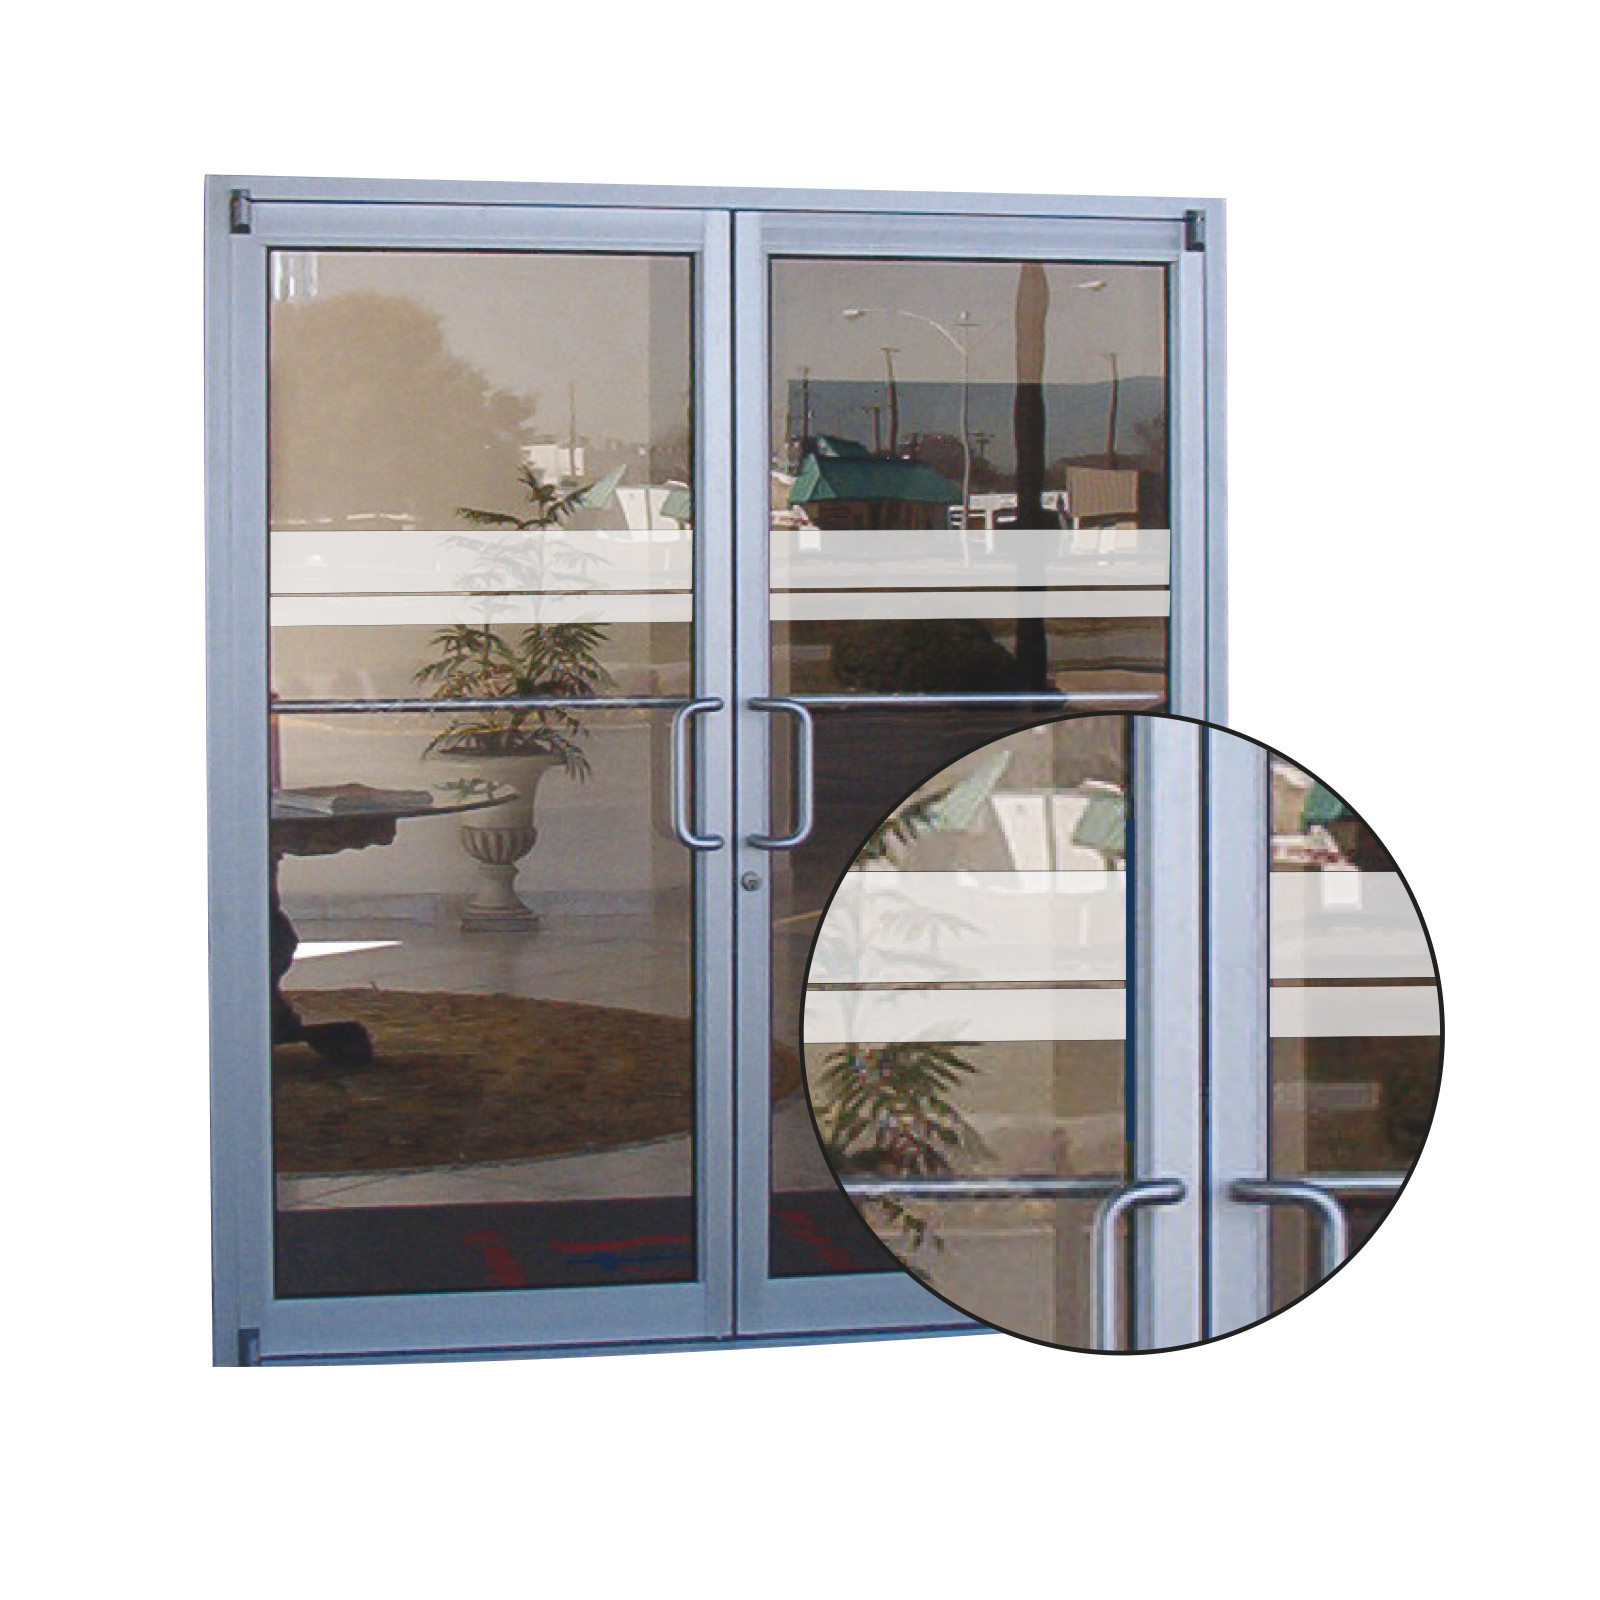 Glass patio door frosted safety decals